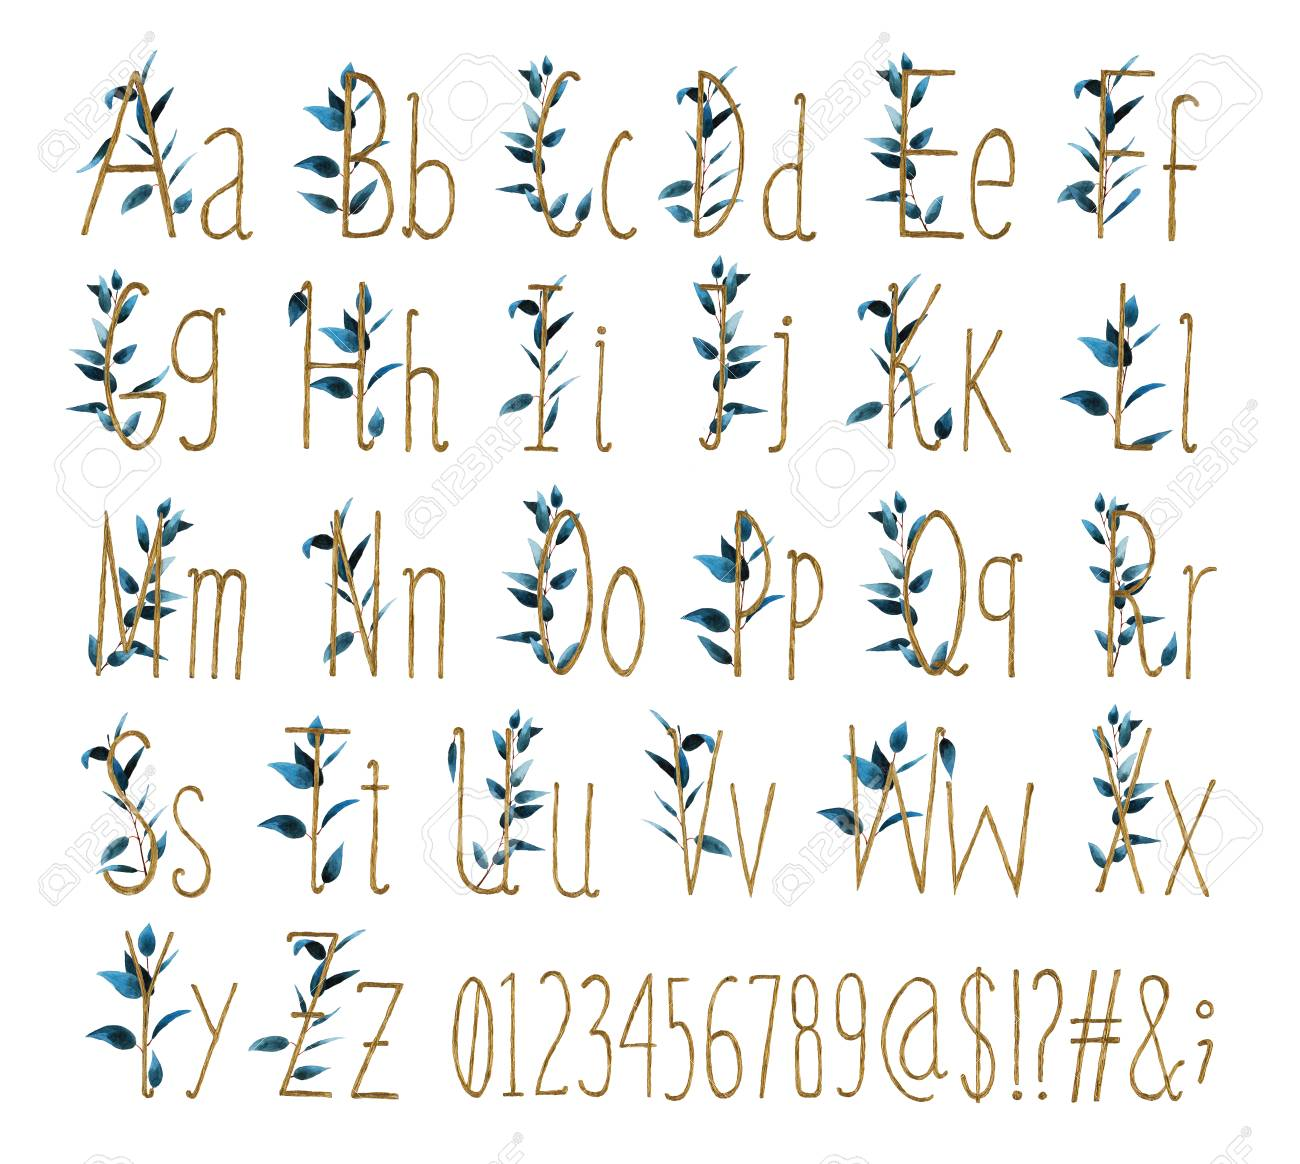 Font of all alphabet with numbers and signs is made of watercolor